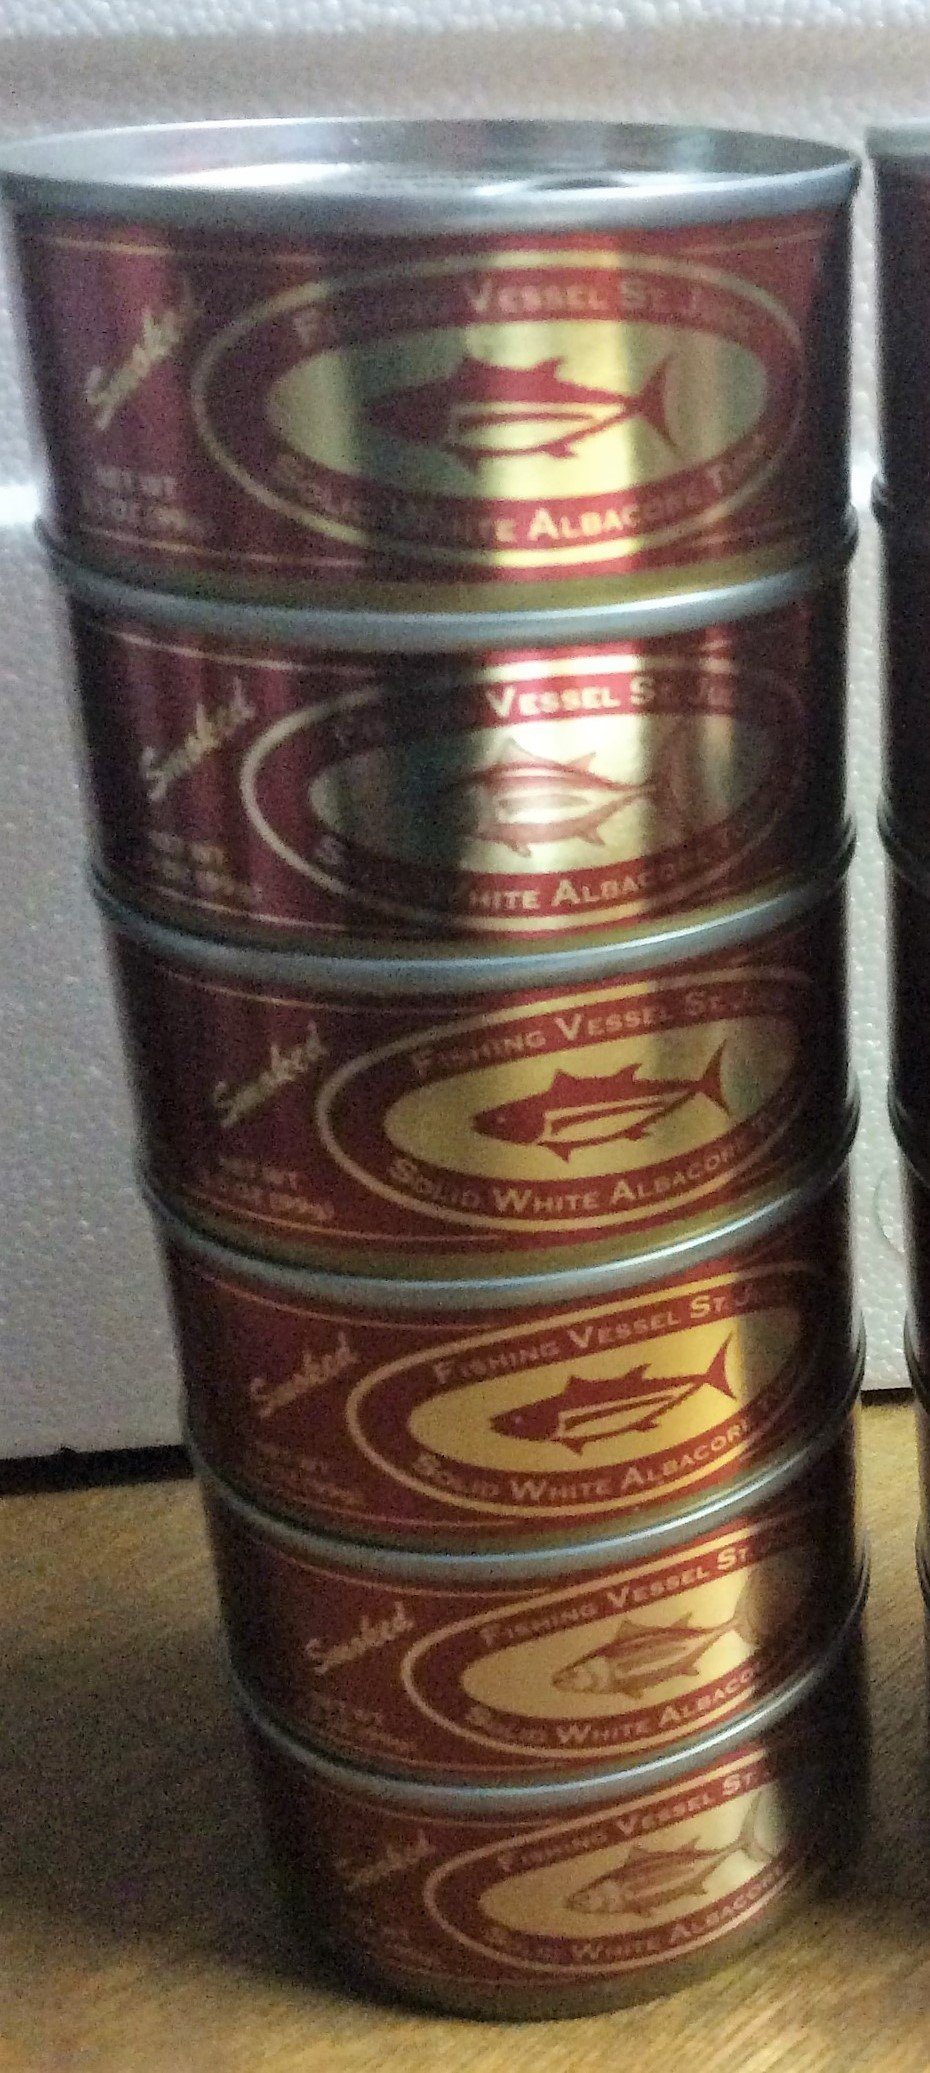 St. Jude Smoked Canned Tuna (6 cans) 6 oz.